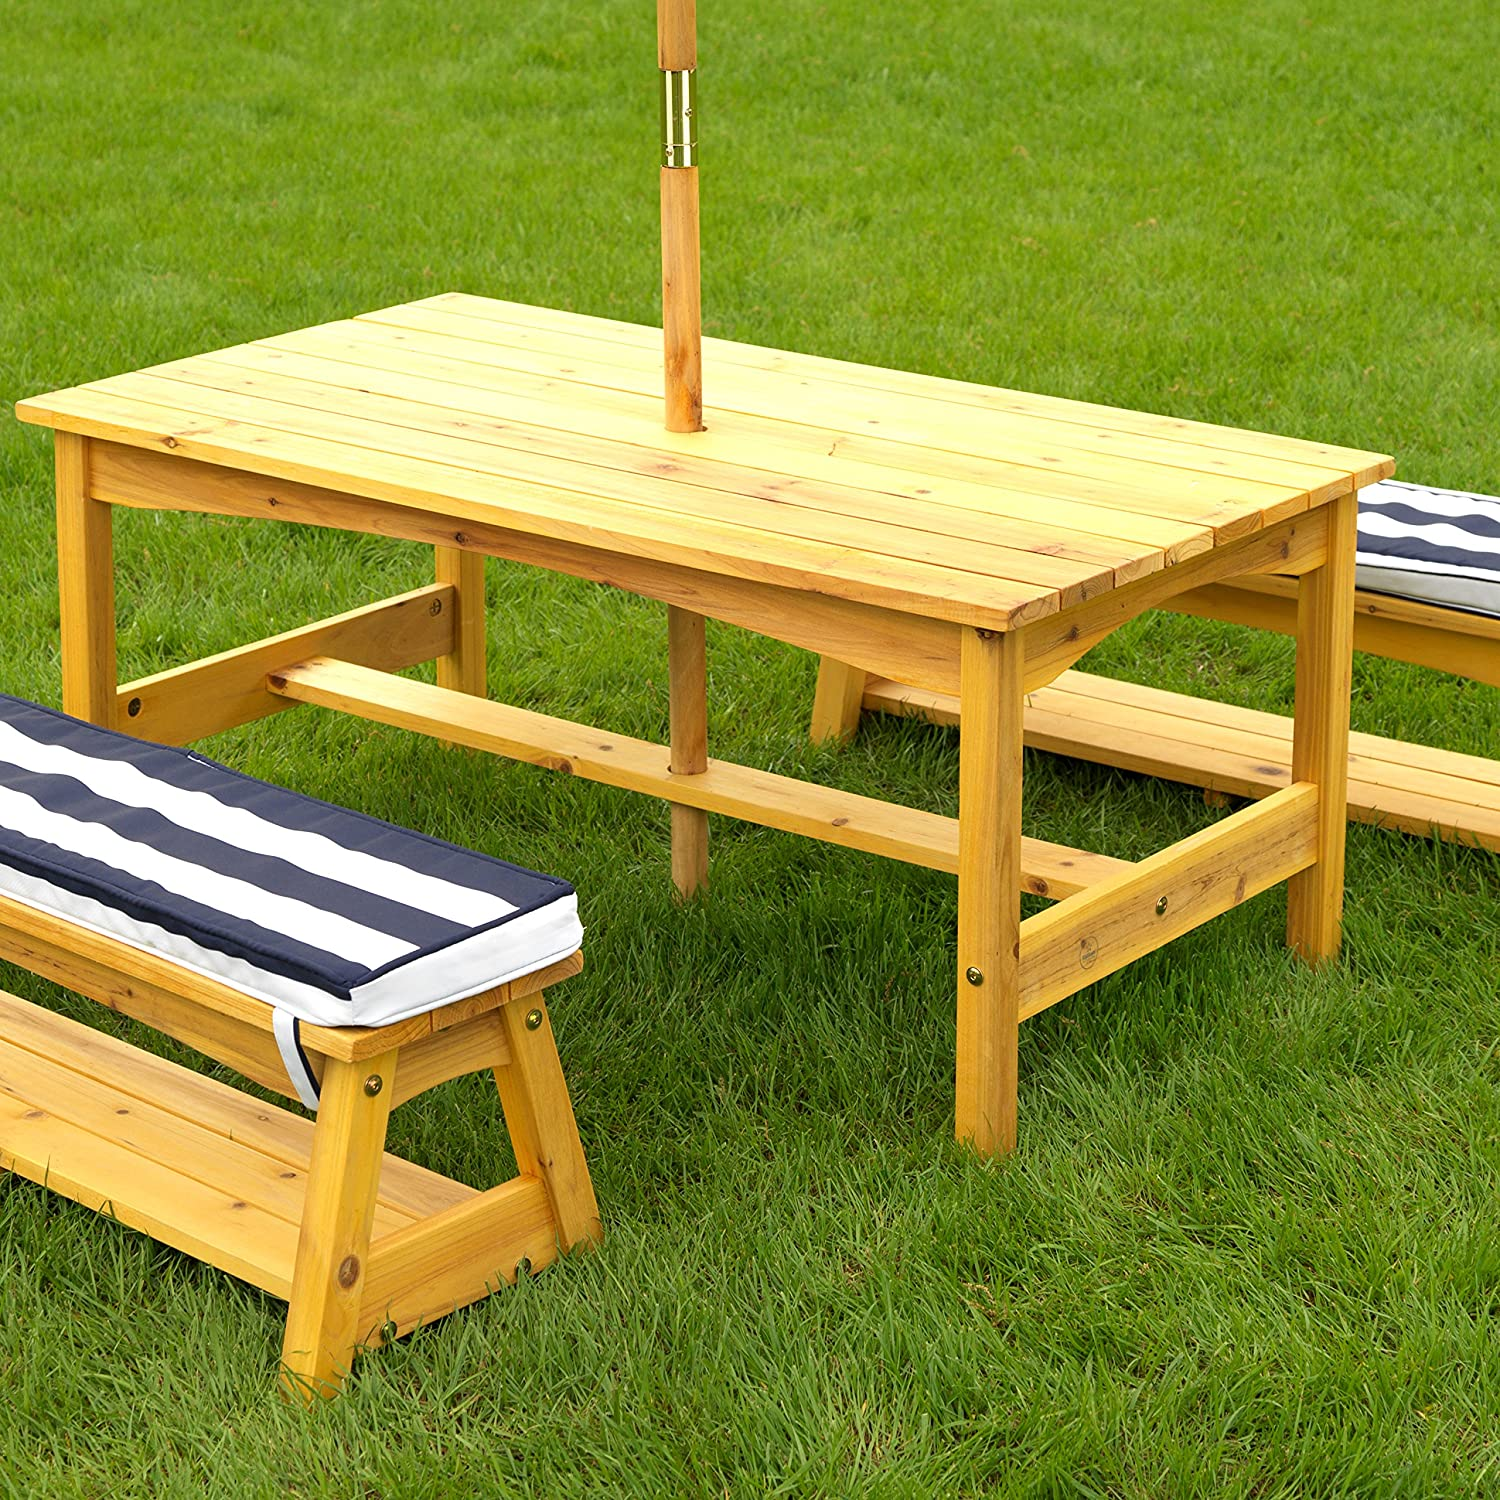 Amazon.com: KidKraft Outdoor table and Chair Set with Cushions and ...